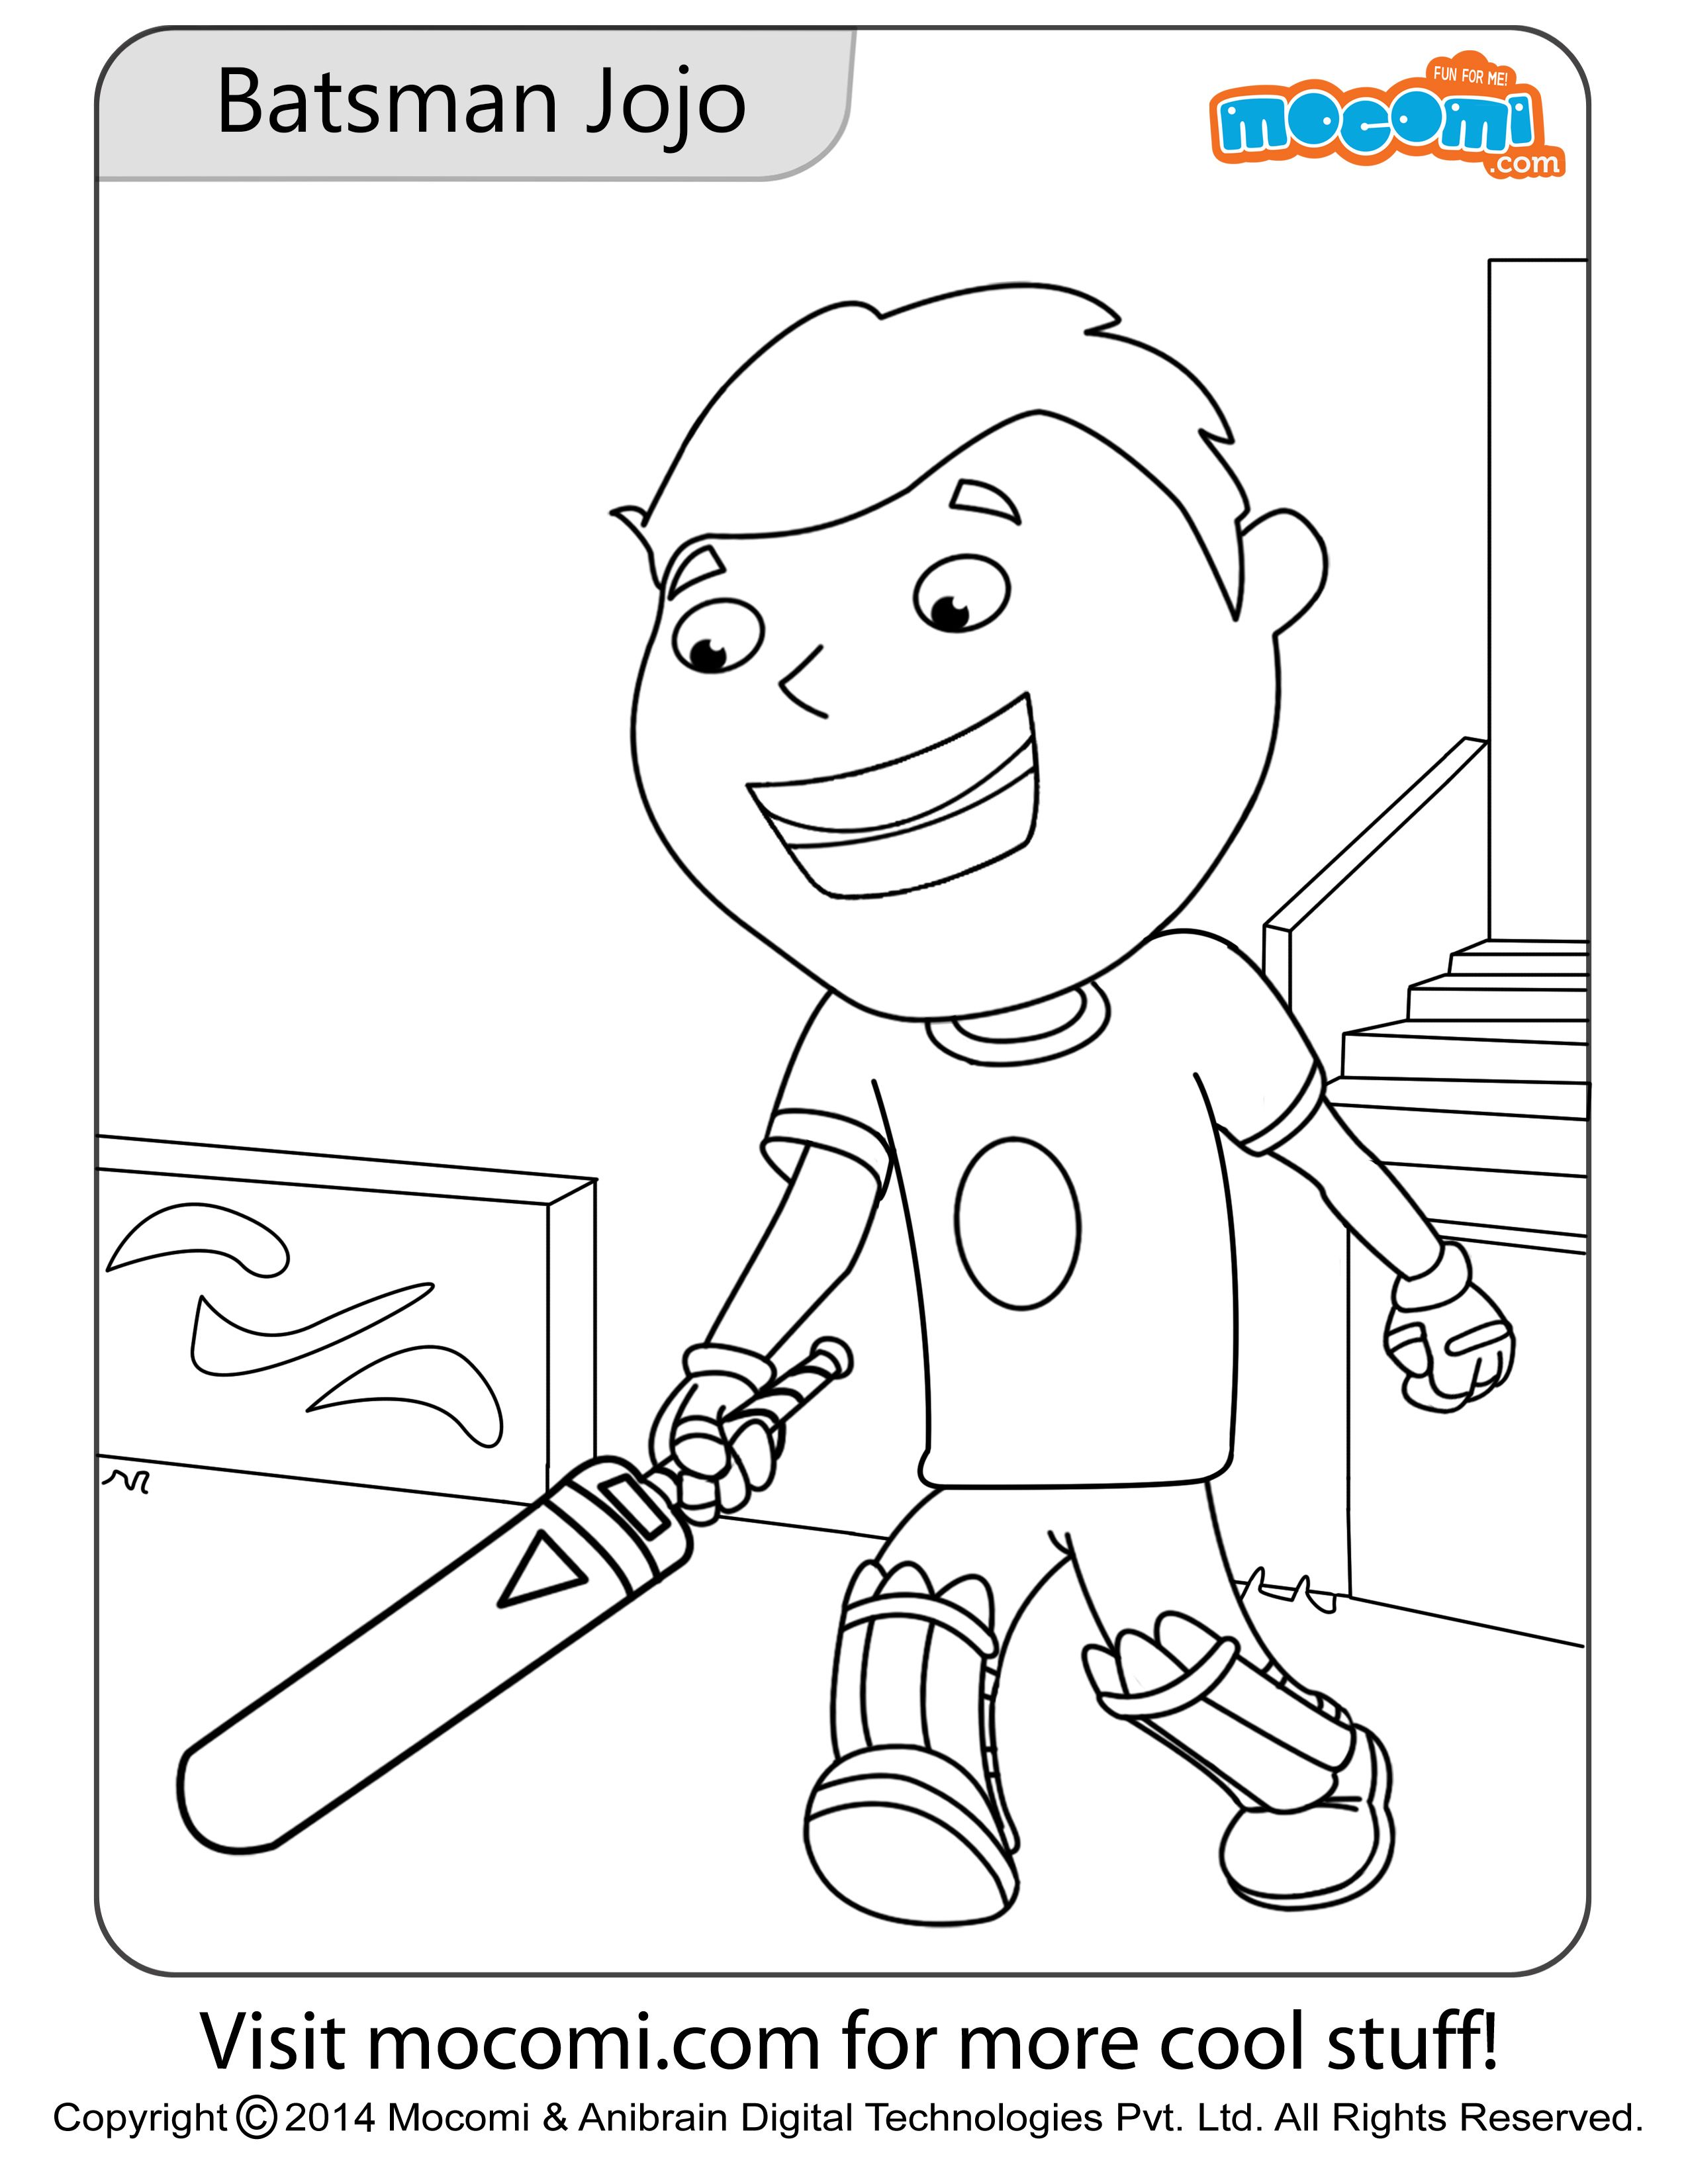 Batsman jojo colouring page colouring pages for kids online